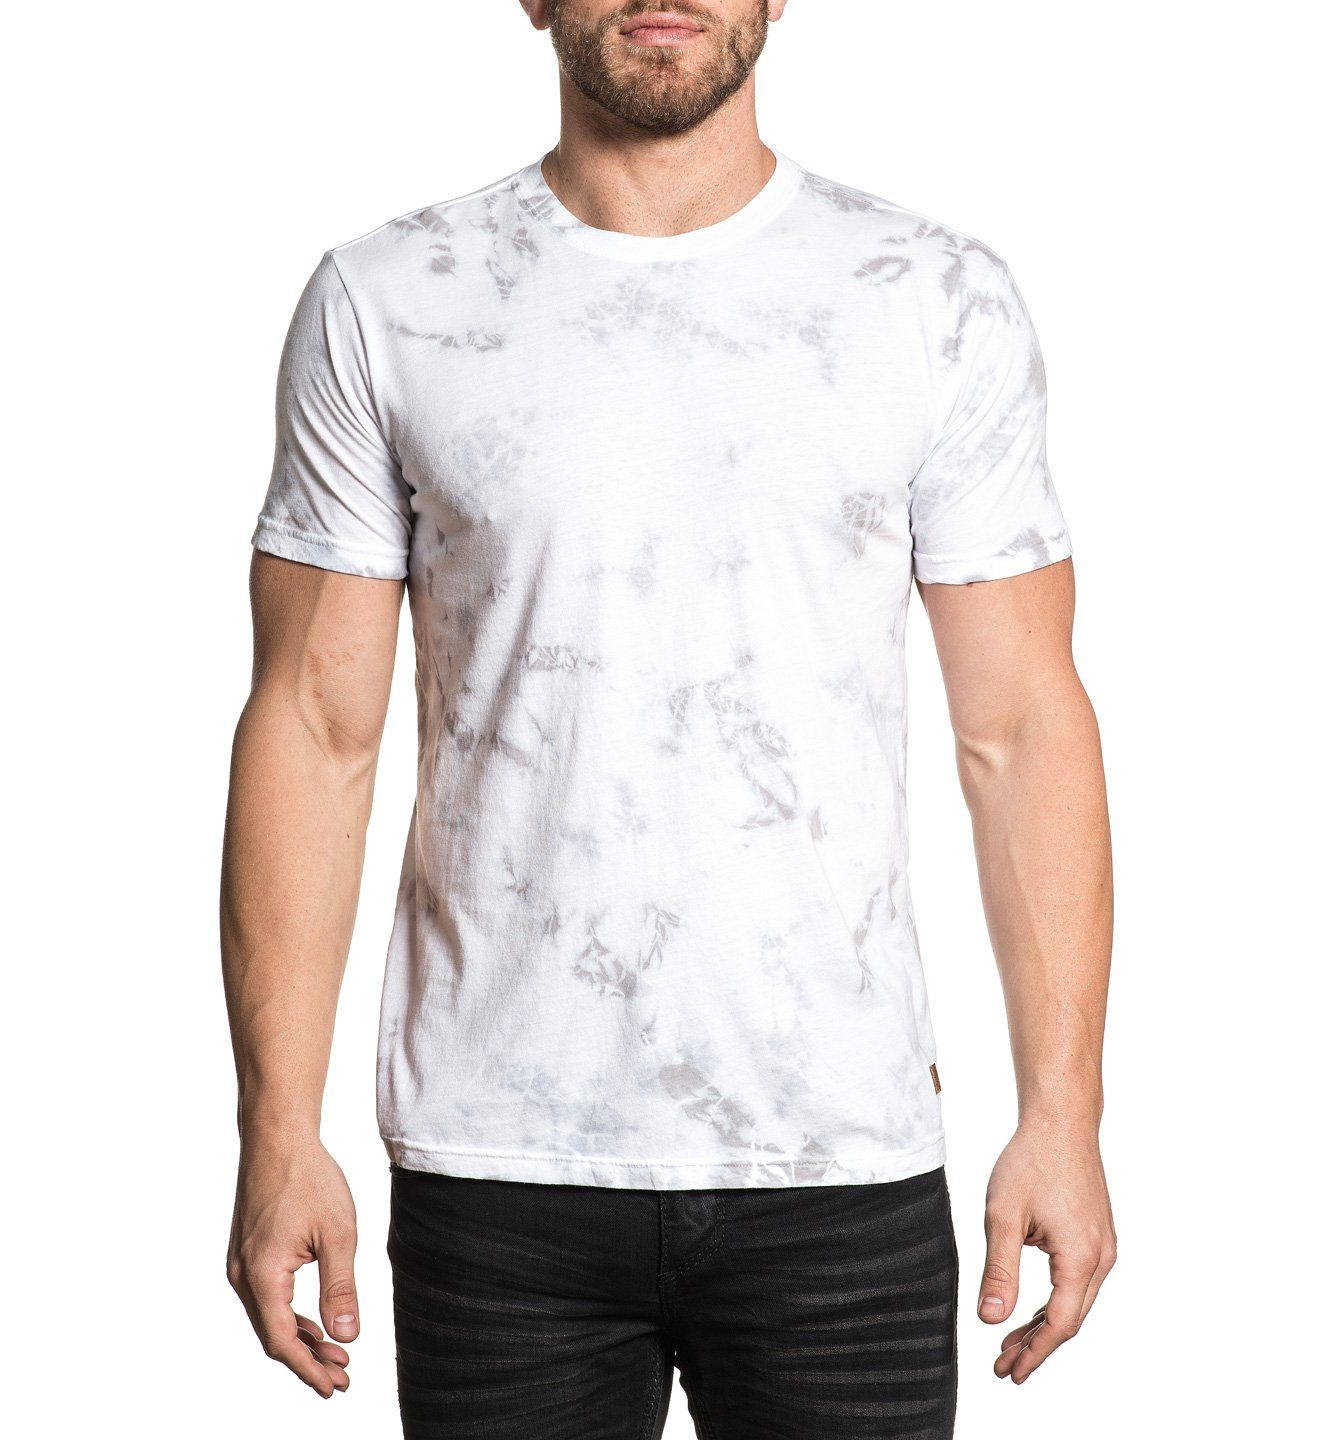 Mens Short Sleeve Tees - Standard Supply M-095